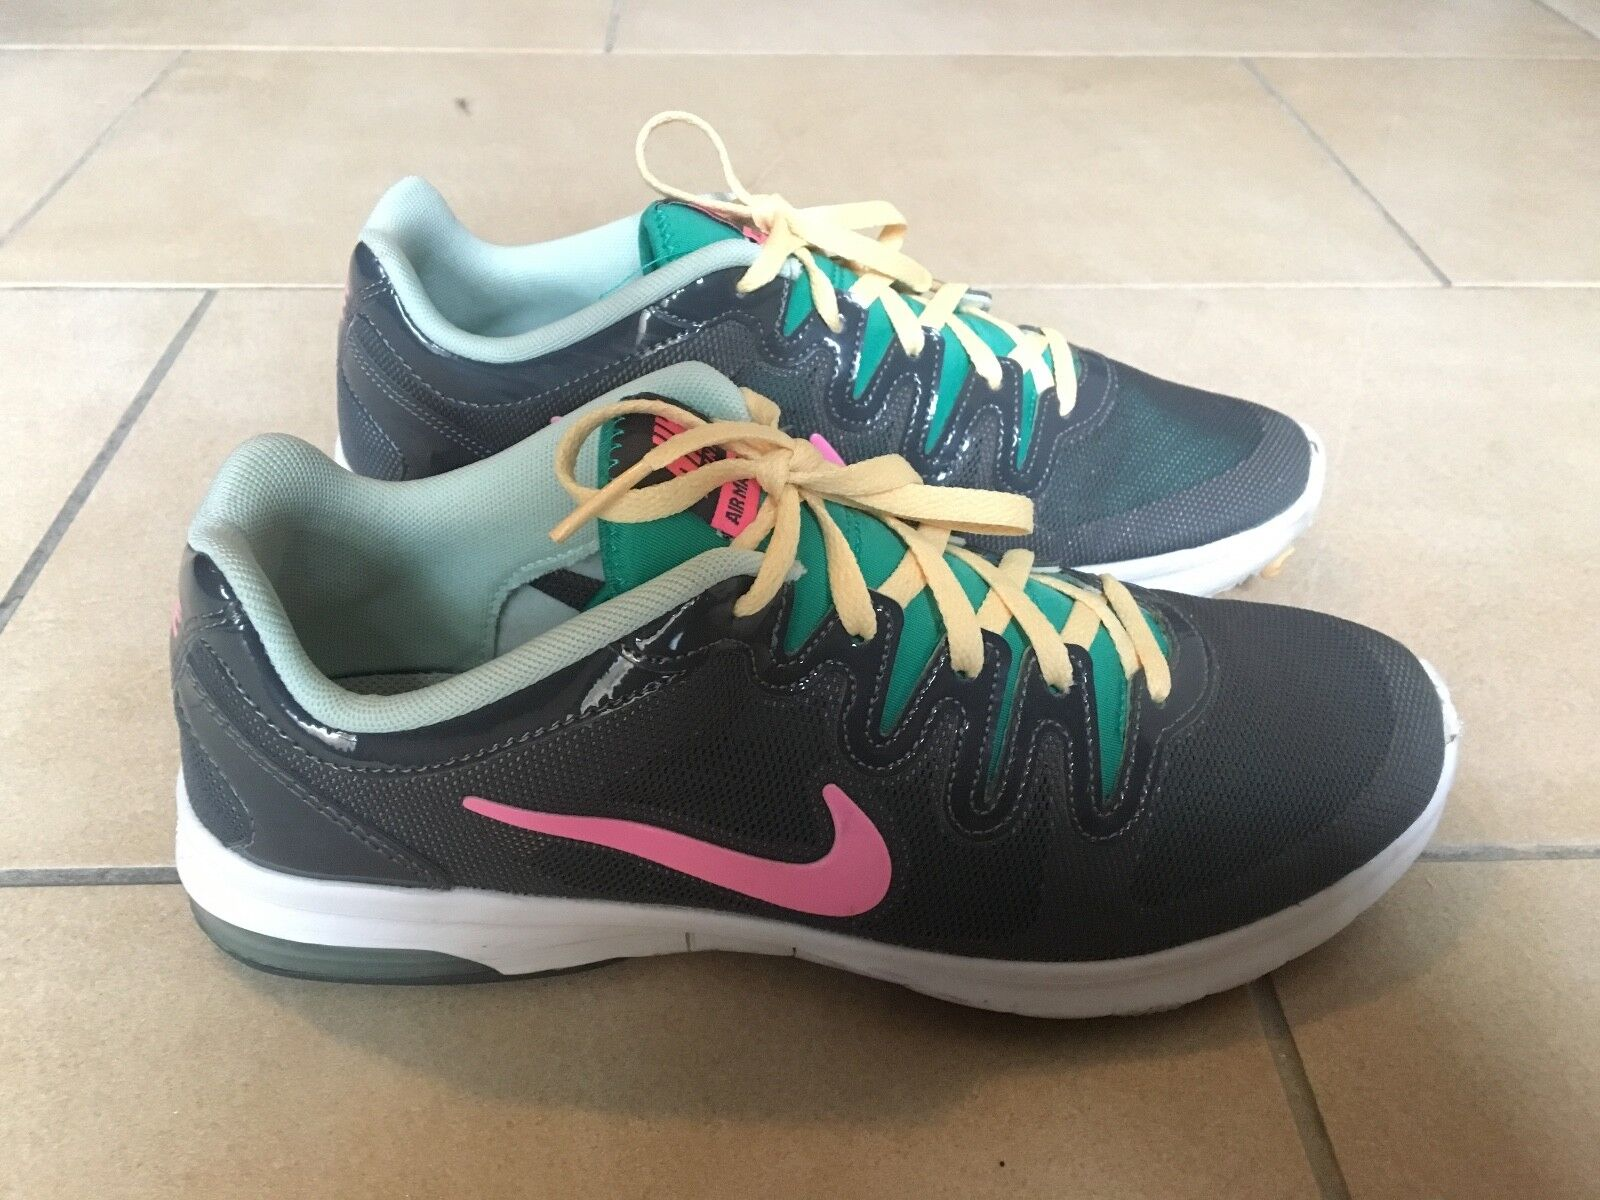 NIKE TRAINING AIR MAX FUSION SHOES SCARPA SNEAKERS DONNA tg 41 eur / 9.5 usa / 7